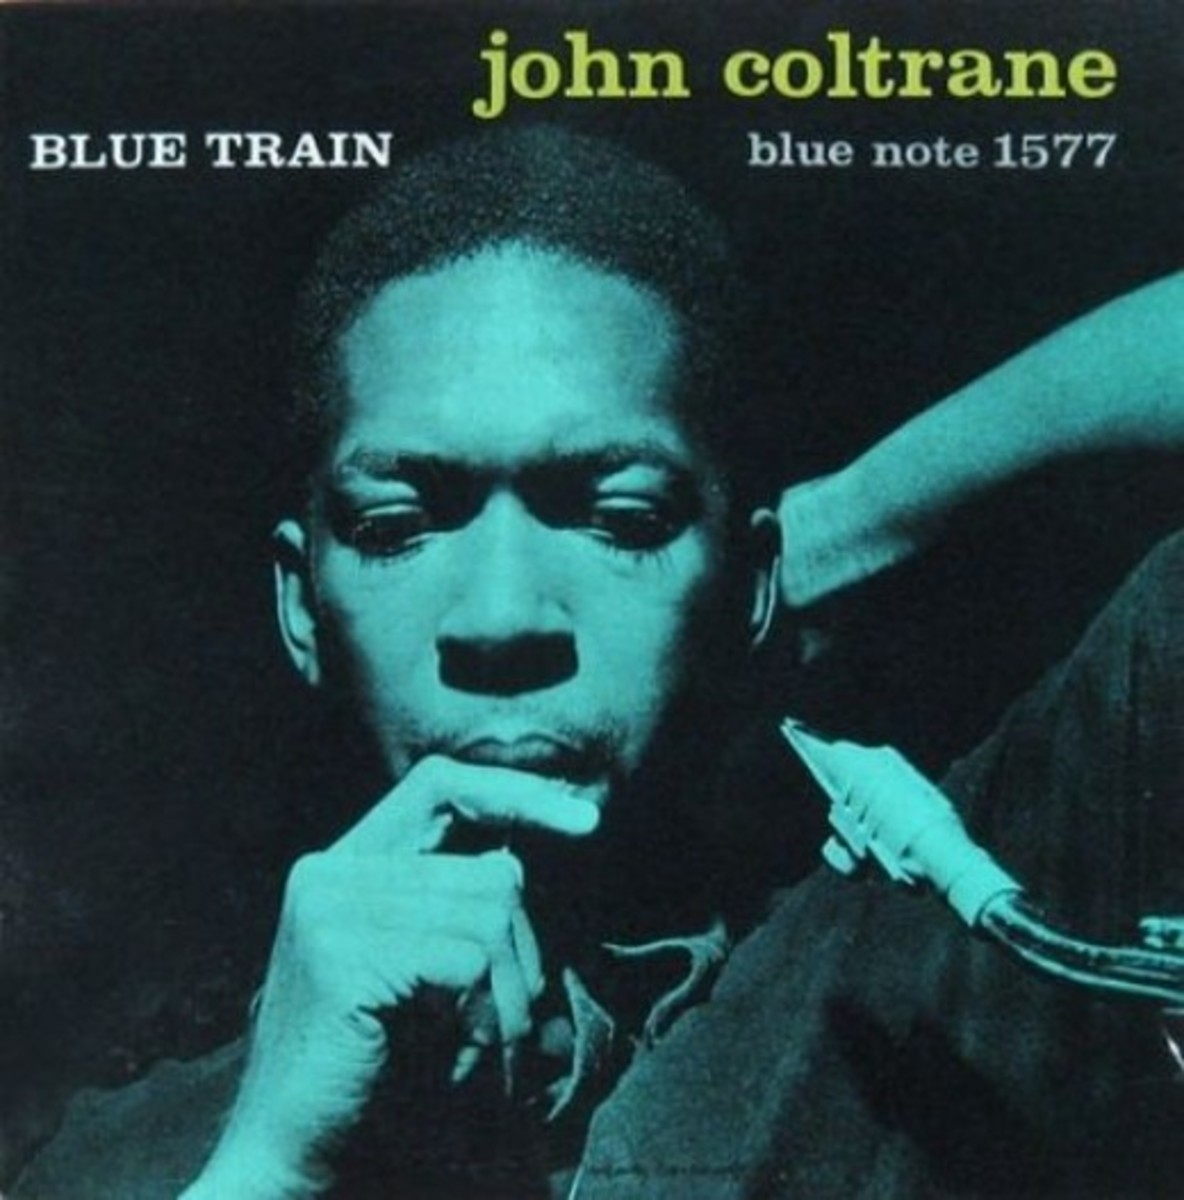 "John Coltrane ""Blue Train"" Blue Note Records BLP 1577 12"" LP Vinyl Record (1957) Album Cover Design by Reid Miles Photo by Franciss Wolff"